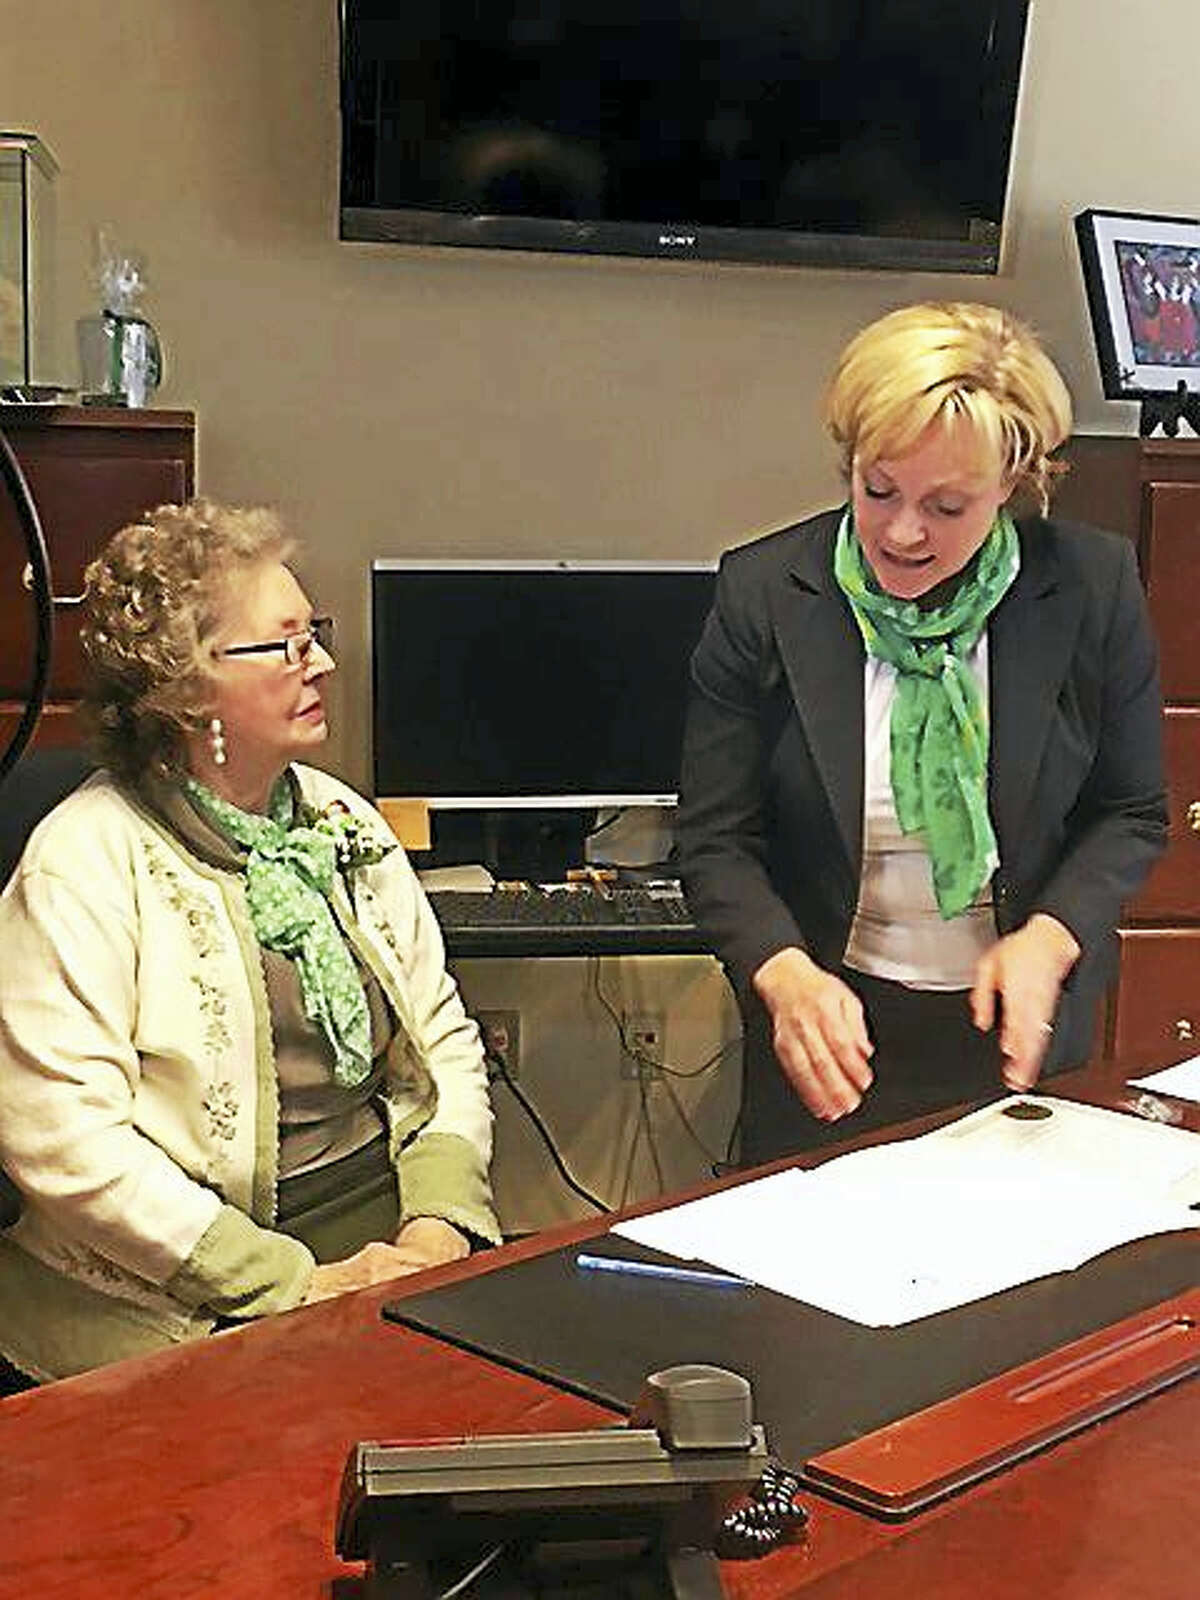 June Zeiner was named the 2017 Lord Mayor for the city of Torrington Friday, during the city's annual St. Patrick's Day celebration. She was recognized for her volunteer work and Irish heritage.